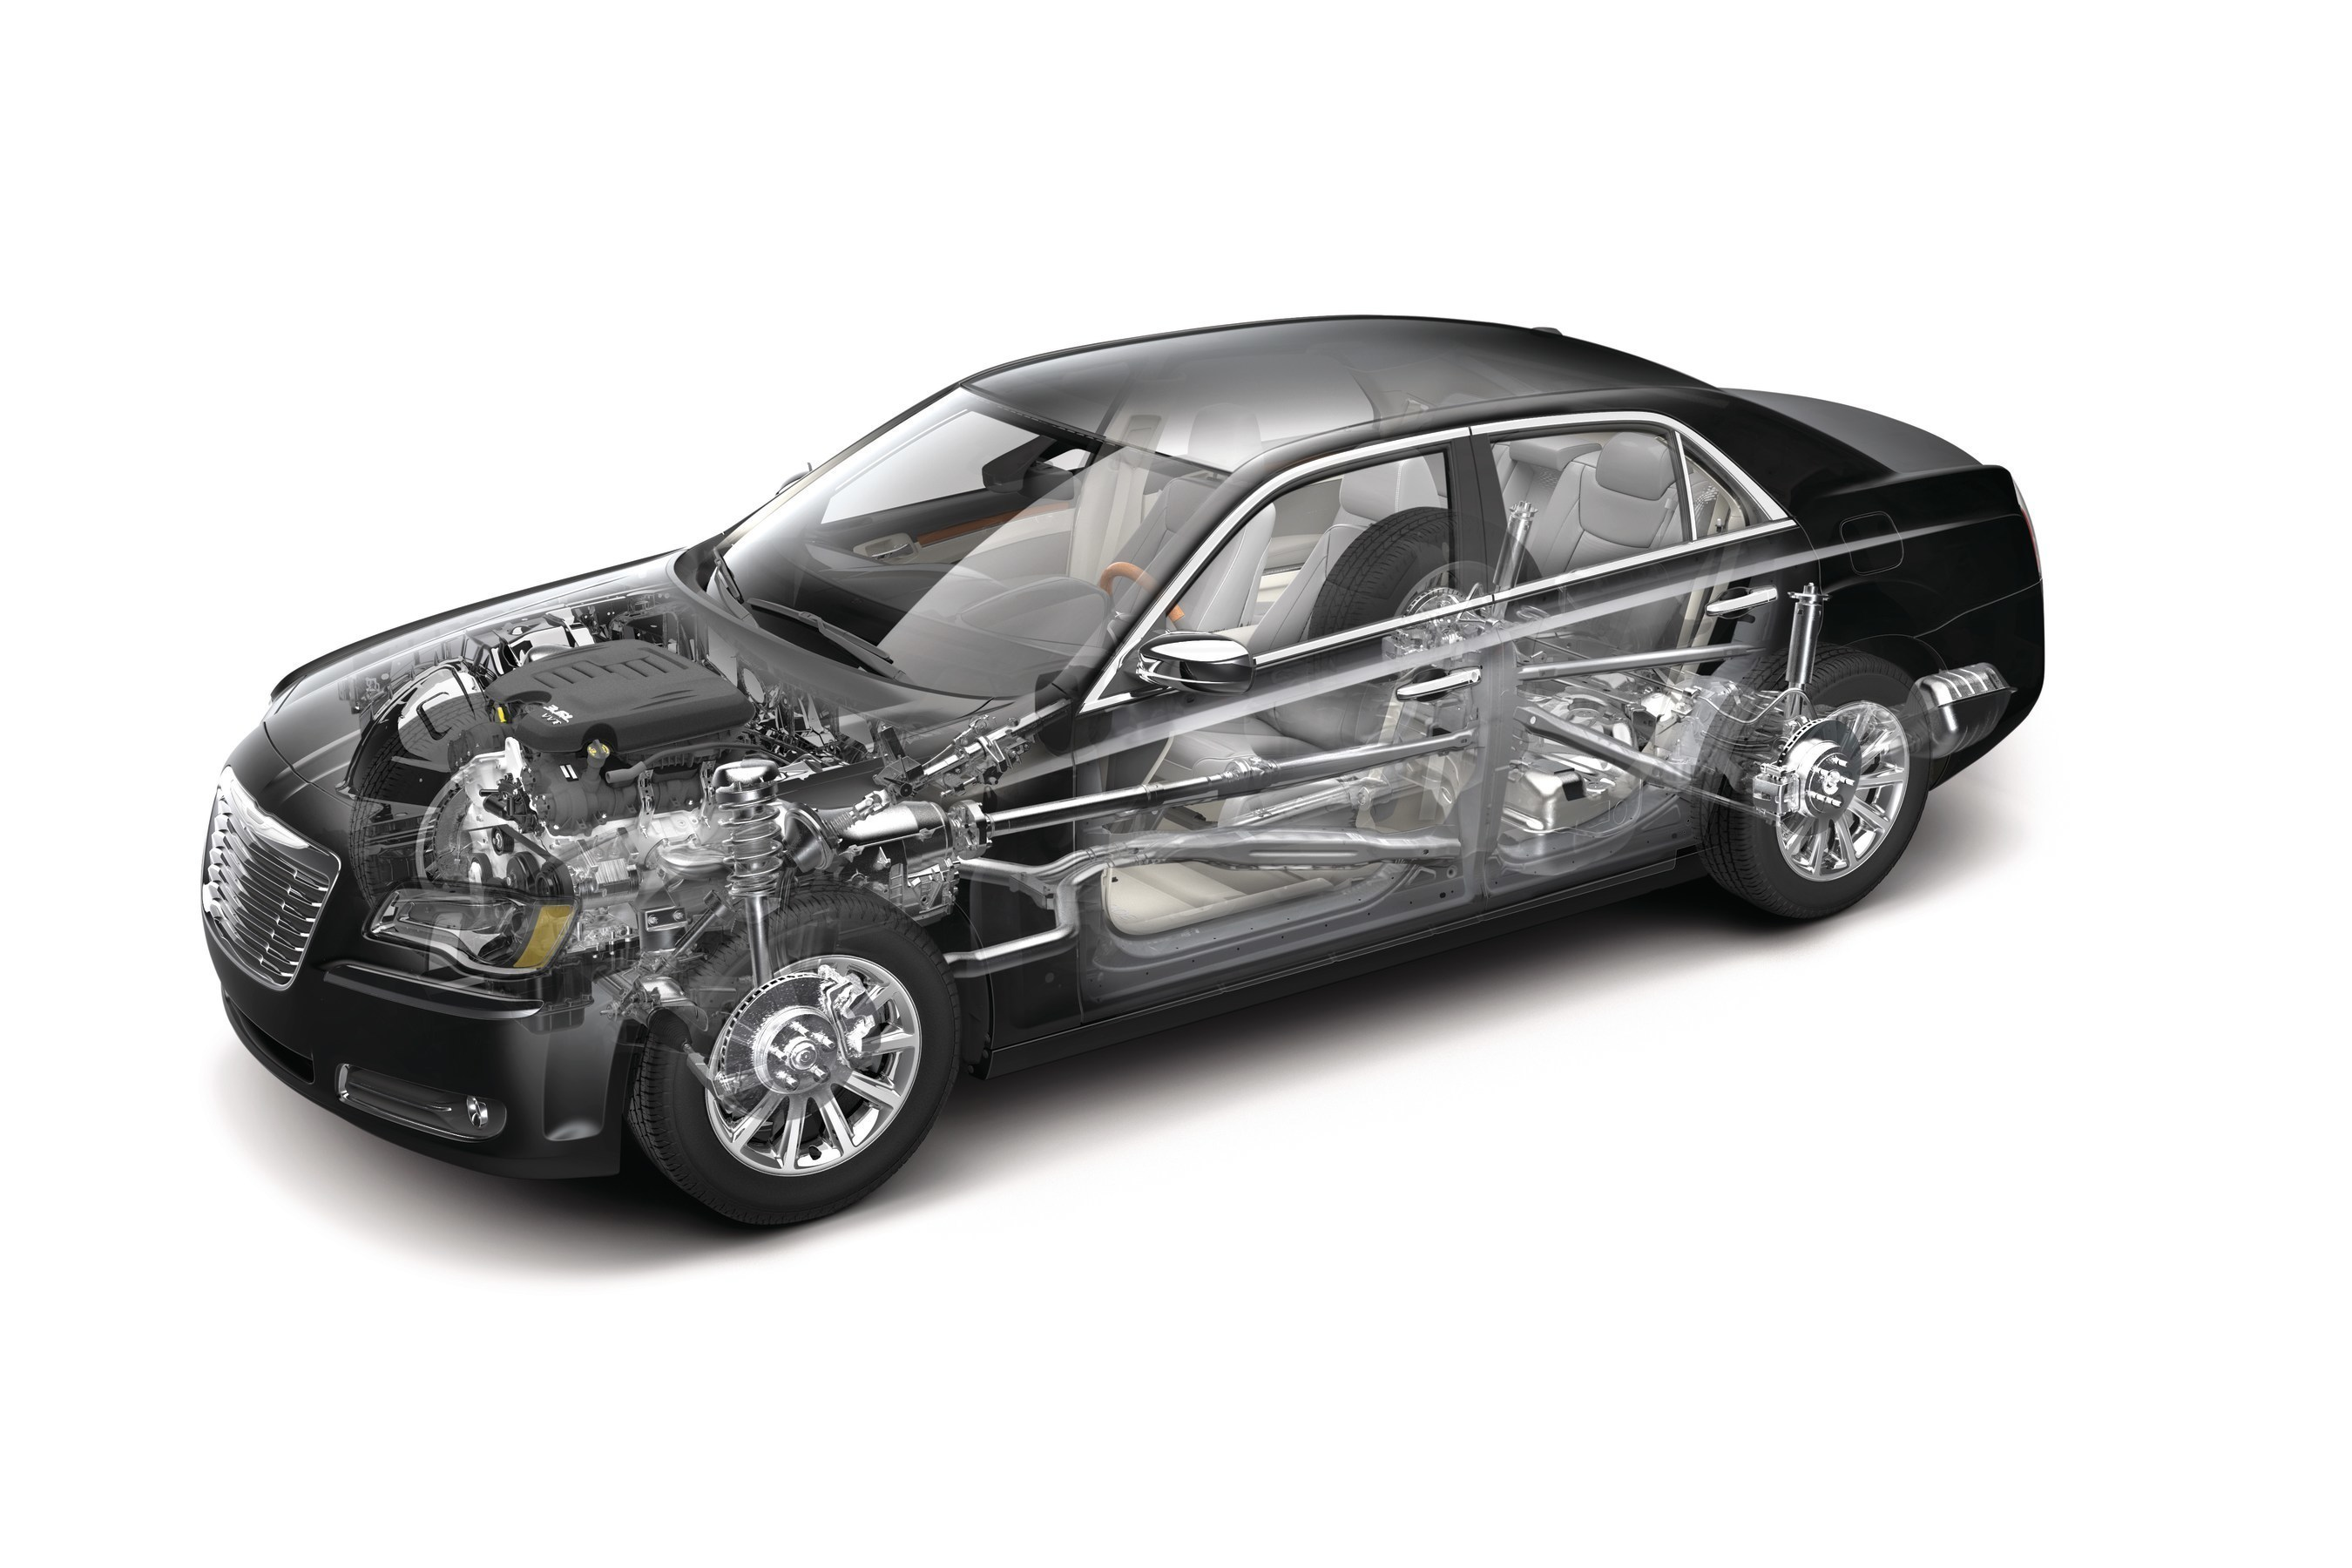 Mopar Complete 360 plans provide vehicle owners hassle-free protection for 5 years/60,000 miles or 6 years/75,000 miles. The plans include complete mechanical coverage for the entire vehicle, covering 5,000-plus components.